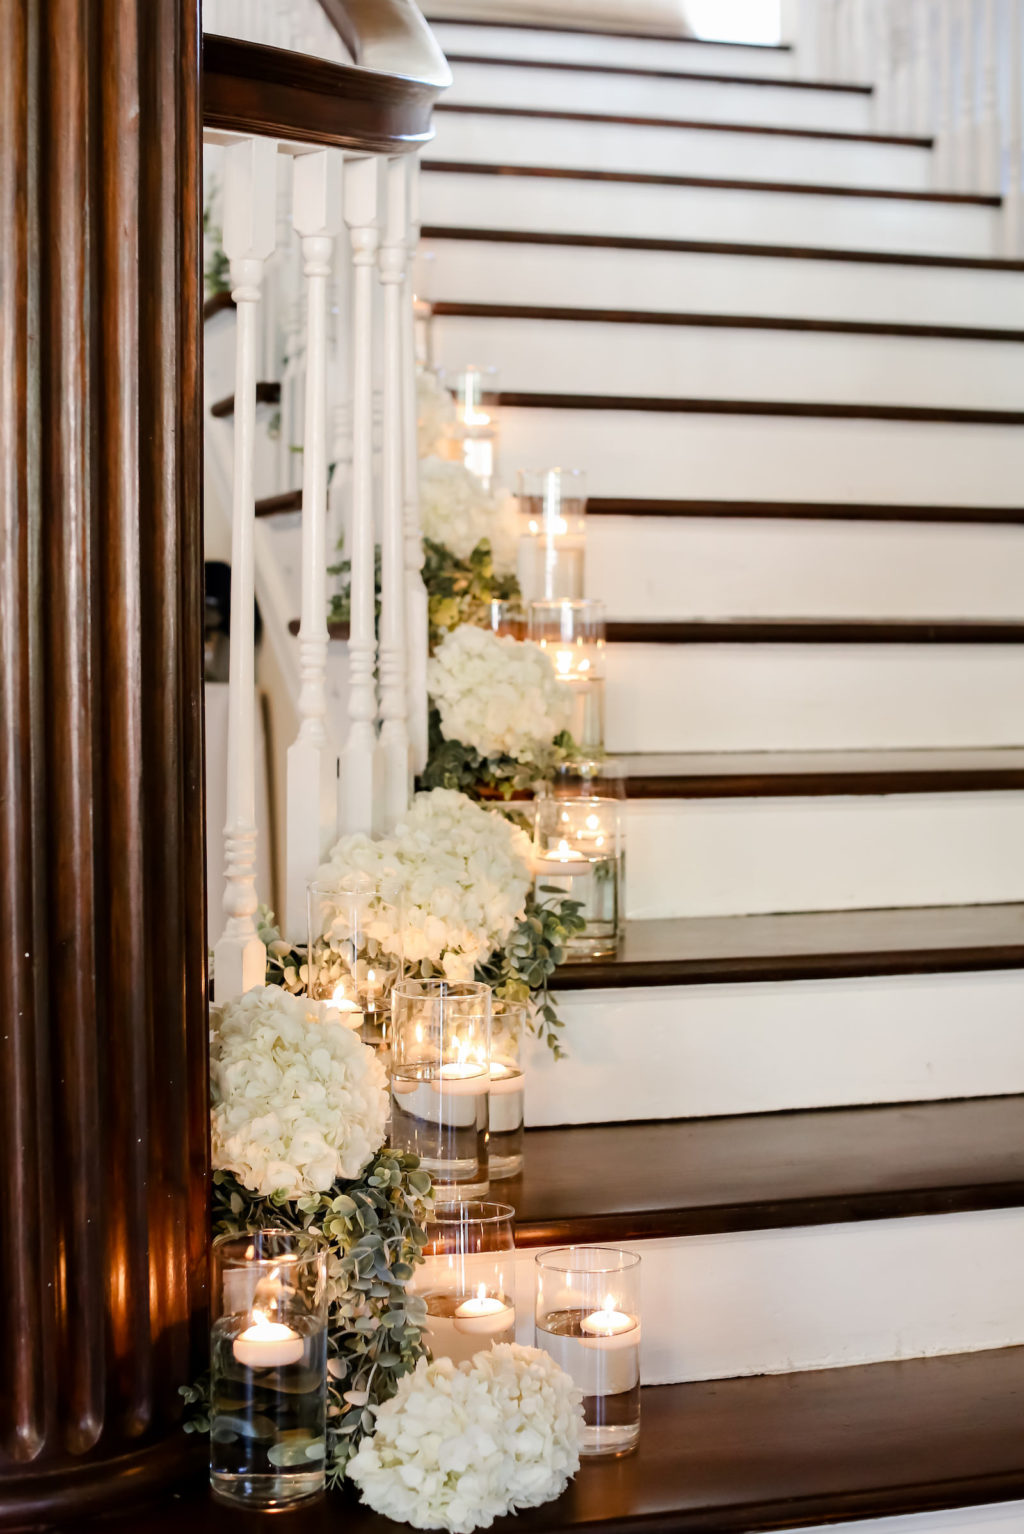 Classic Wedding Decor, Staircase Lined with Floating Candles, White Hydrangea Floral Arrangements | Tampa Bay Wedding Photographer Lifelong Photography Studio | Wedding Planner Core Concepts